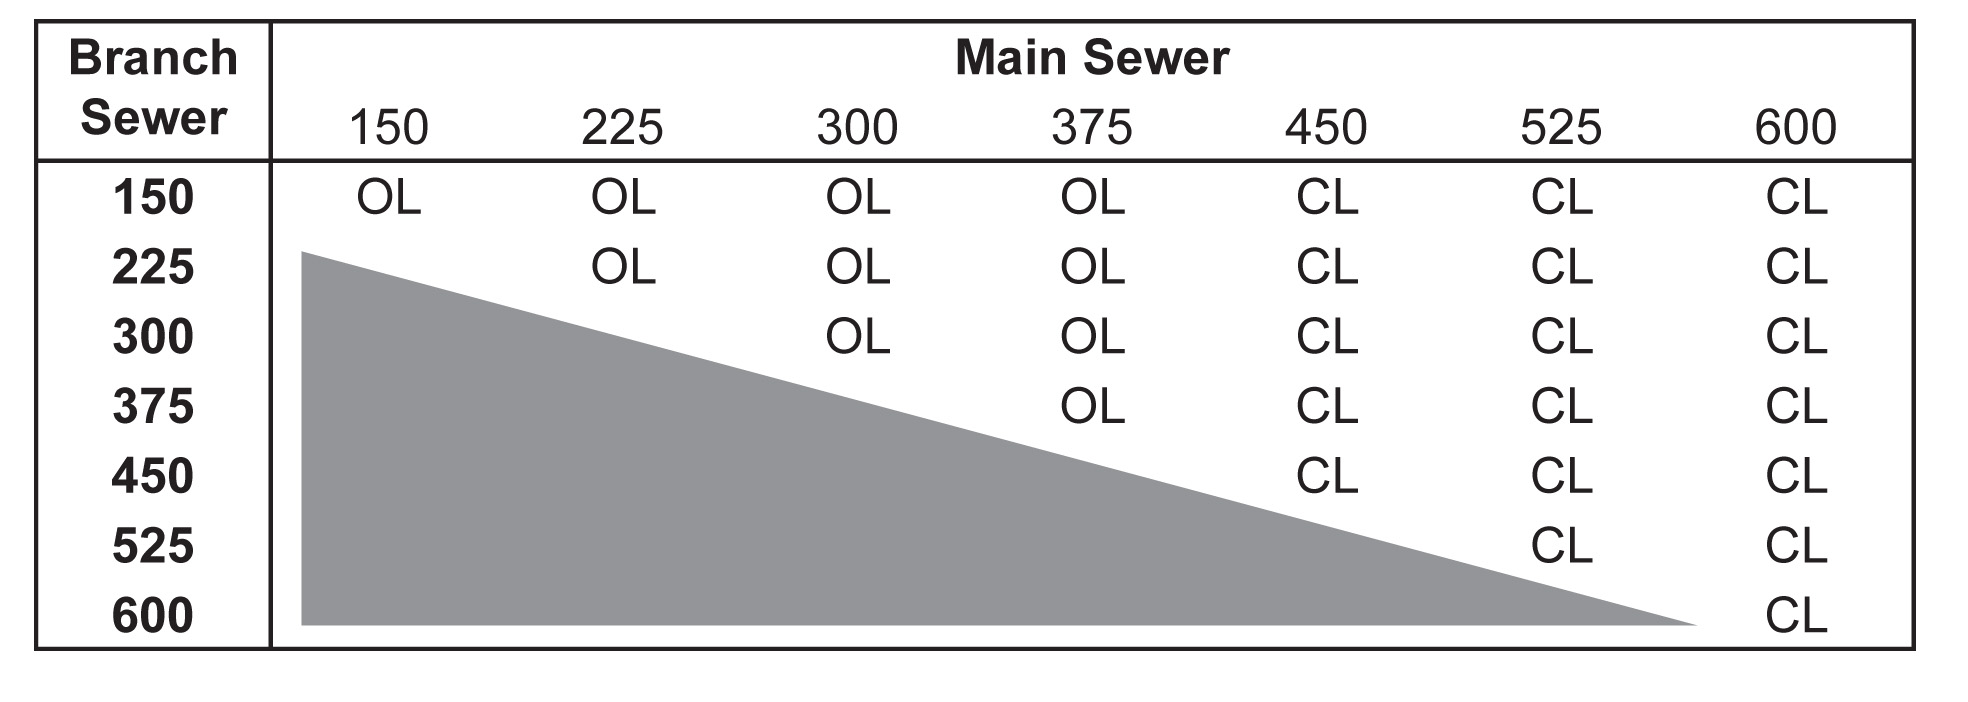 Main sewer table 3-14